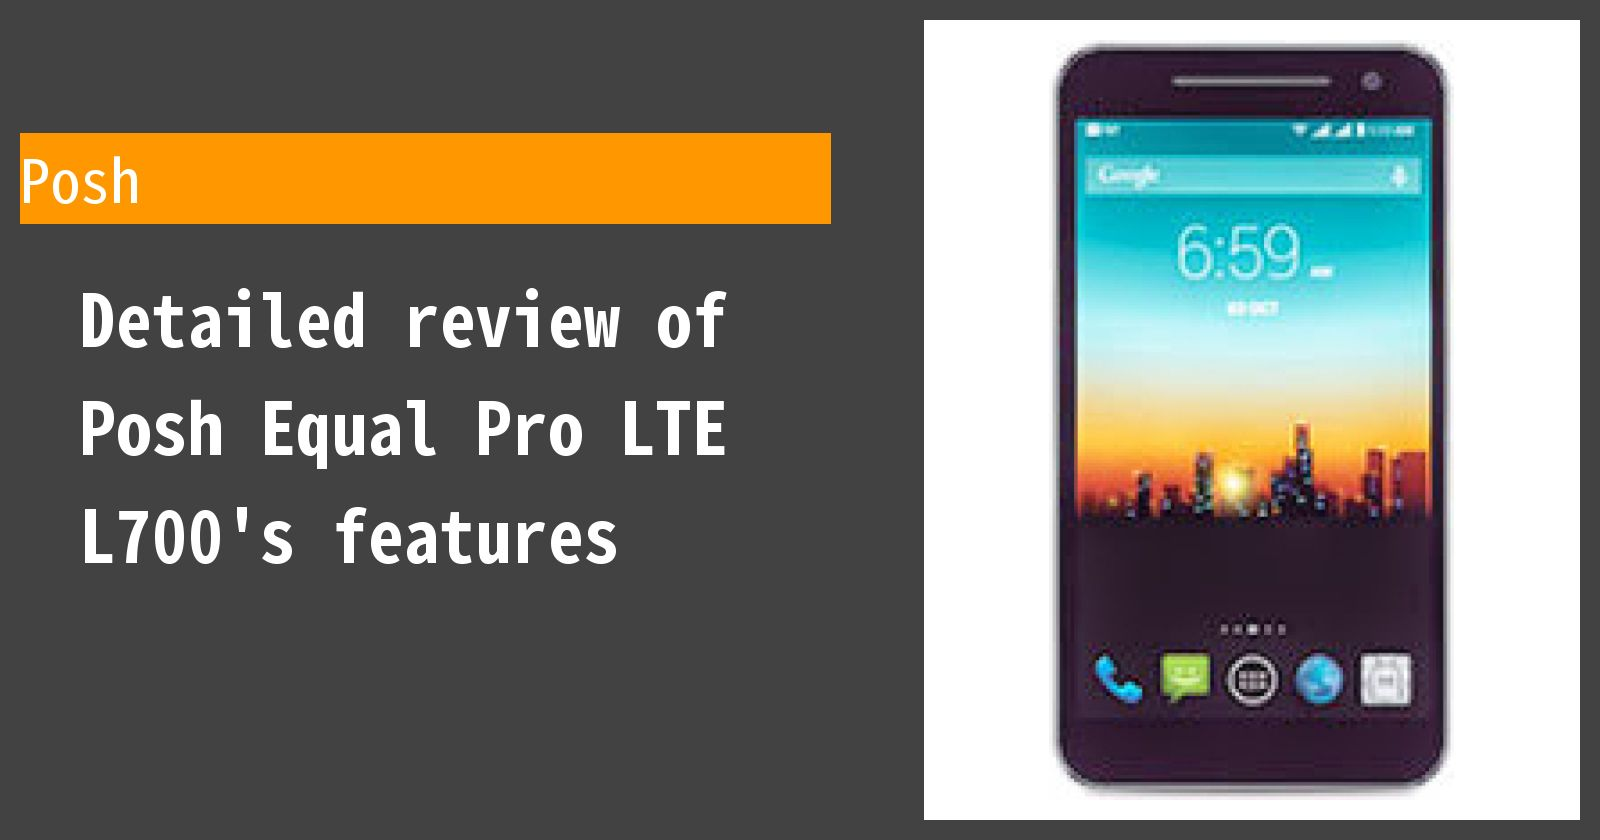 Detailed review of Posh Equal Pro LTE L700's features